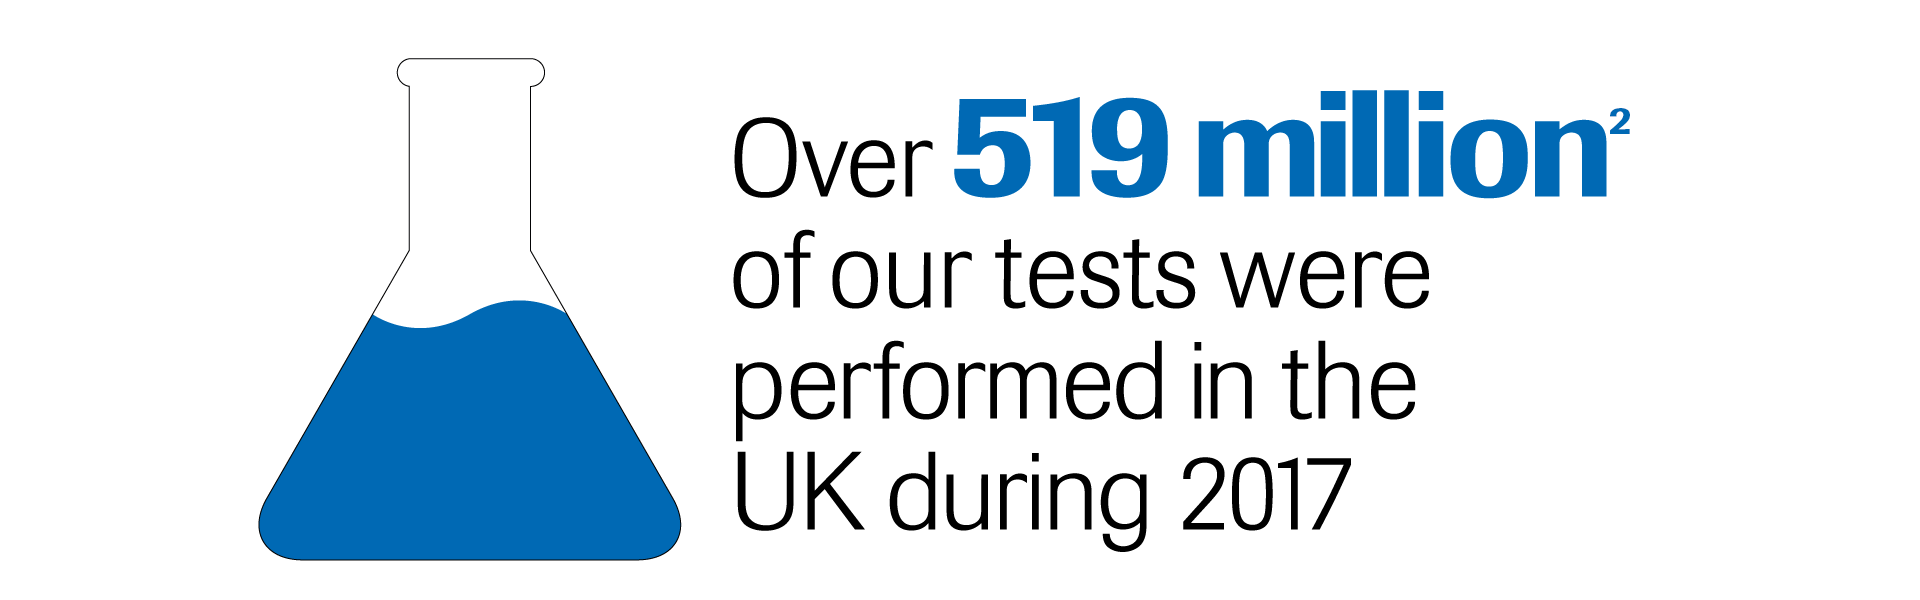 Over 519 Million of our tests were performed in the UK during 2017